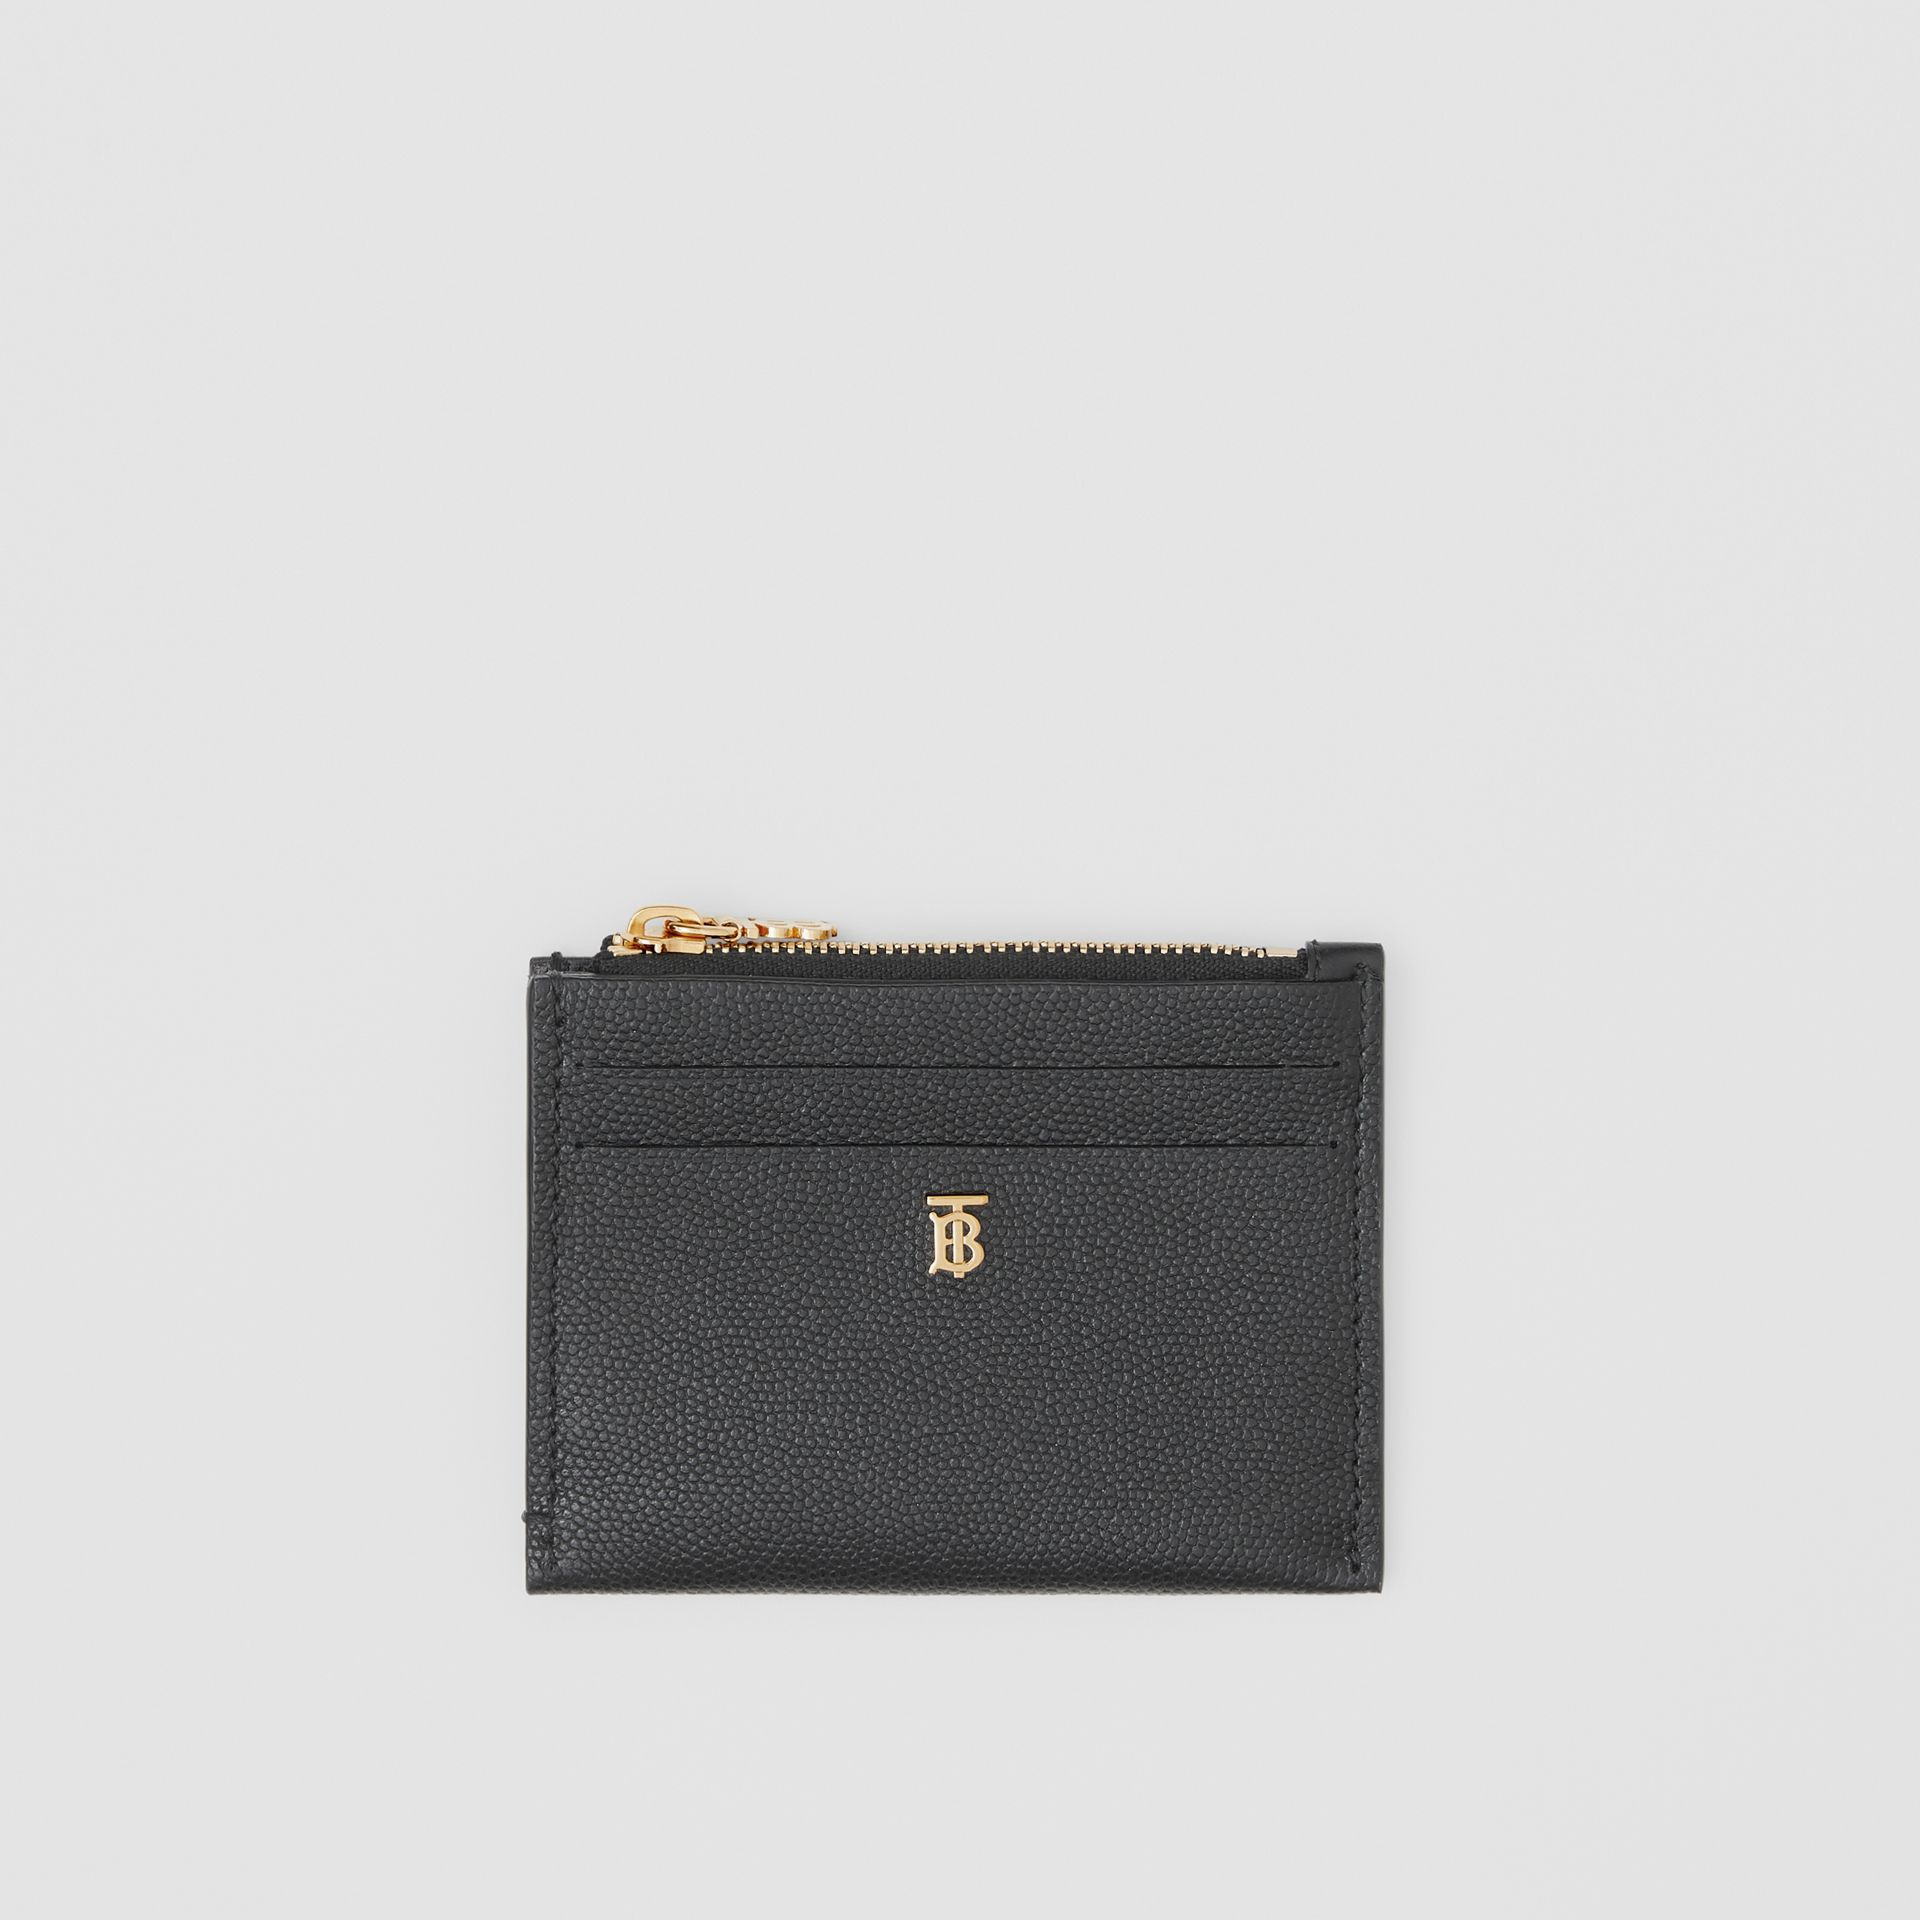 Monogram Motif Grainy Leather Zip Card Case in Black - Women | Burberry Hong Kong S.A.R - gallery image 0